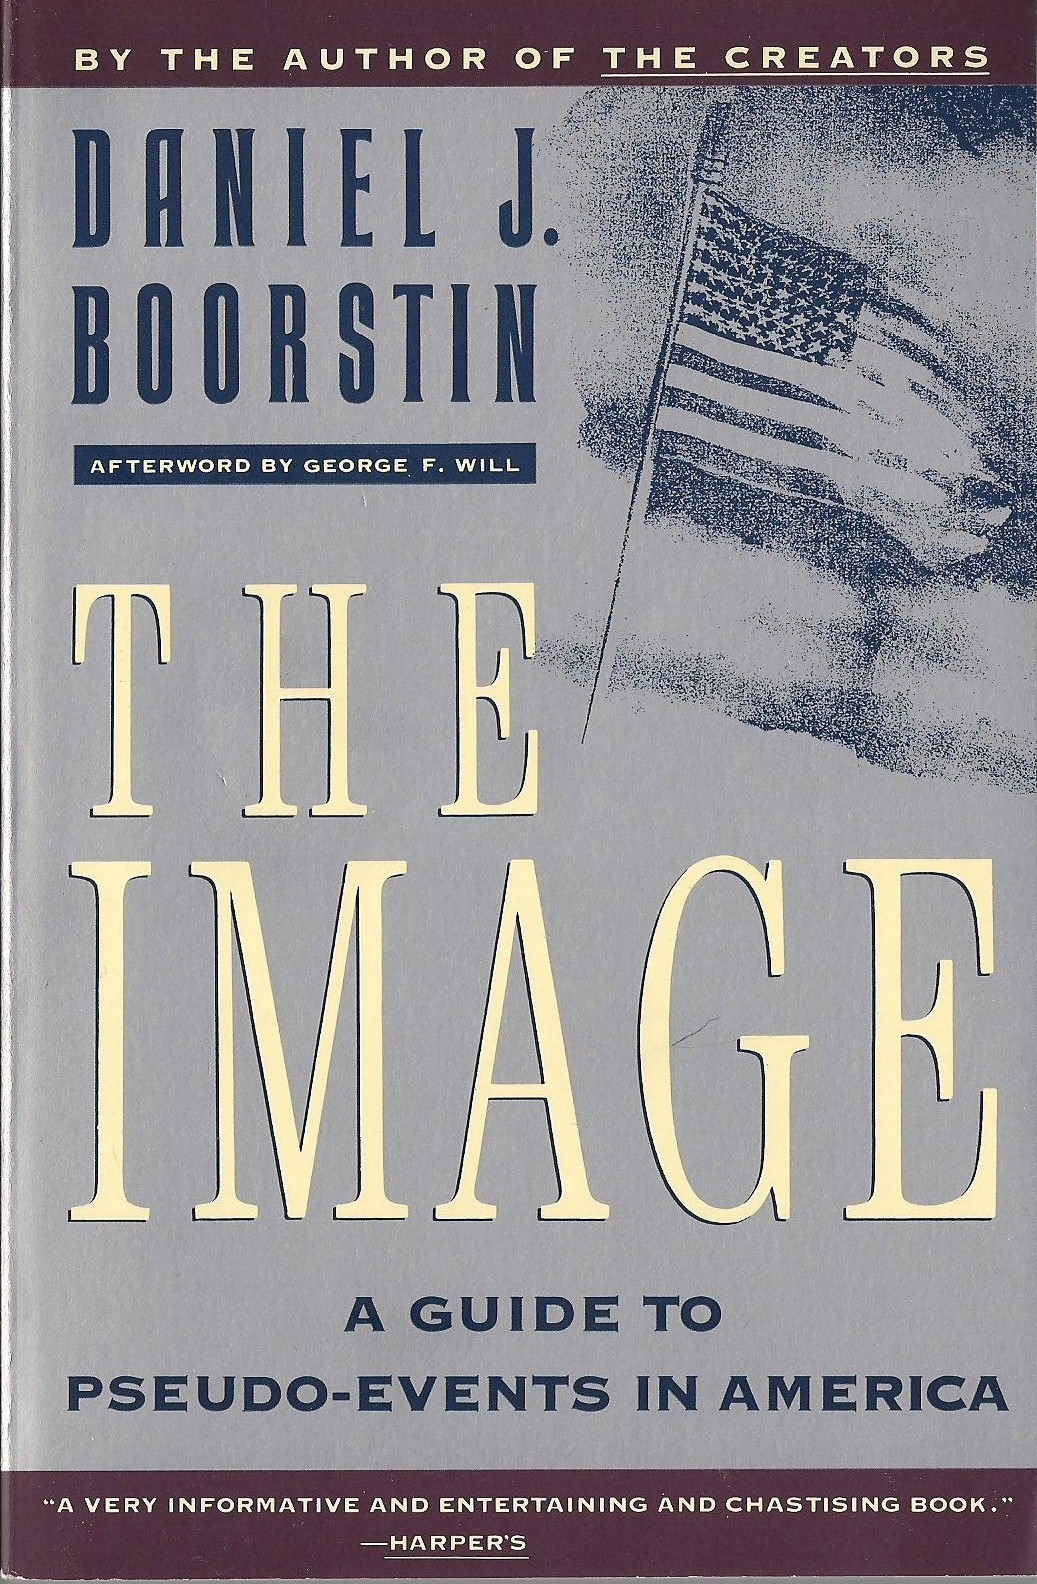 Image result for the image boorstin book